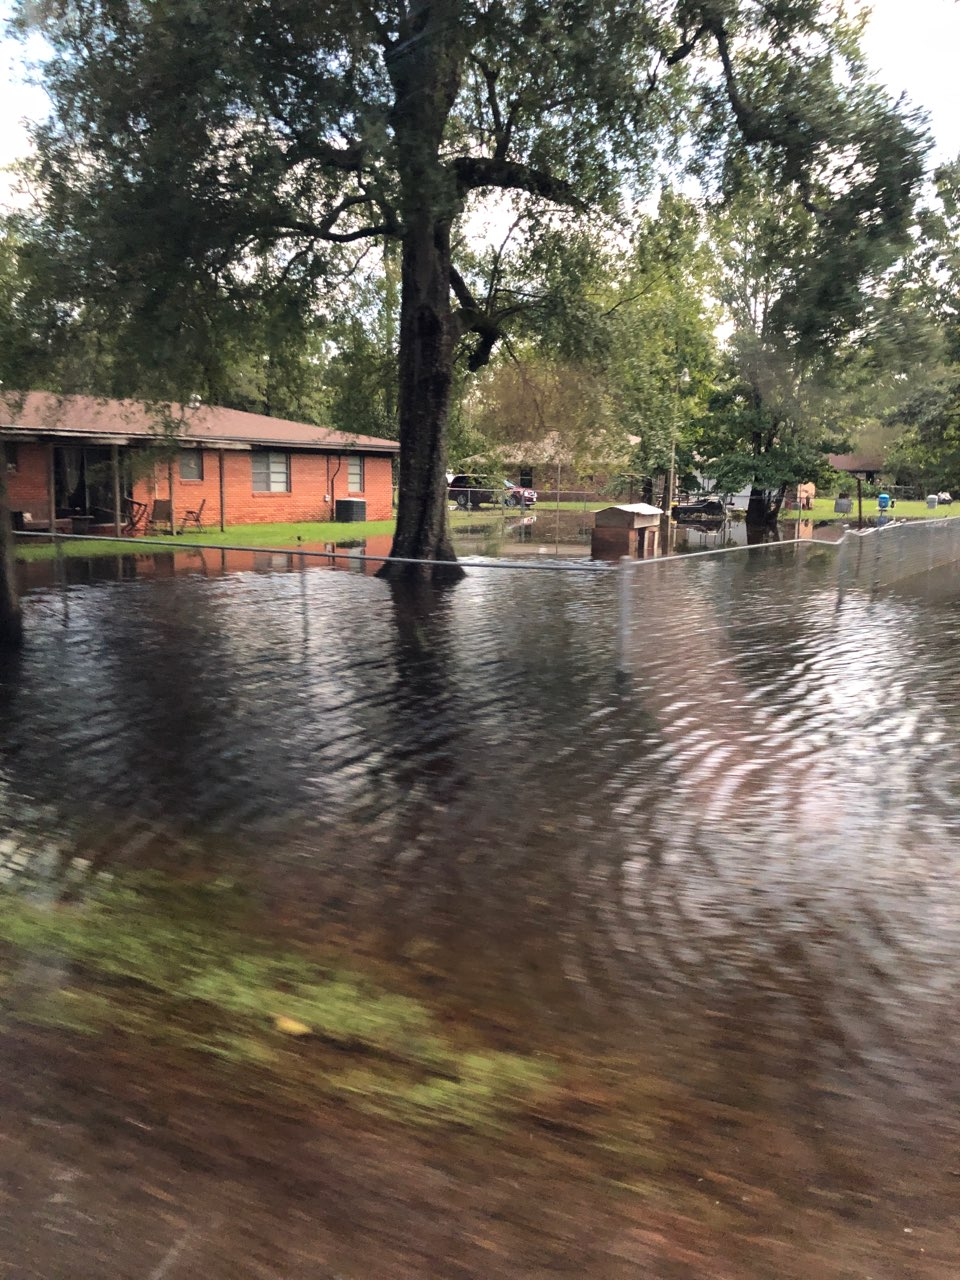 Homes in the greater Houston, Texas, area are flooded in the aftermath of Tropical Storm Imelda, which made landfall on Sept. 19, 2019.